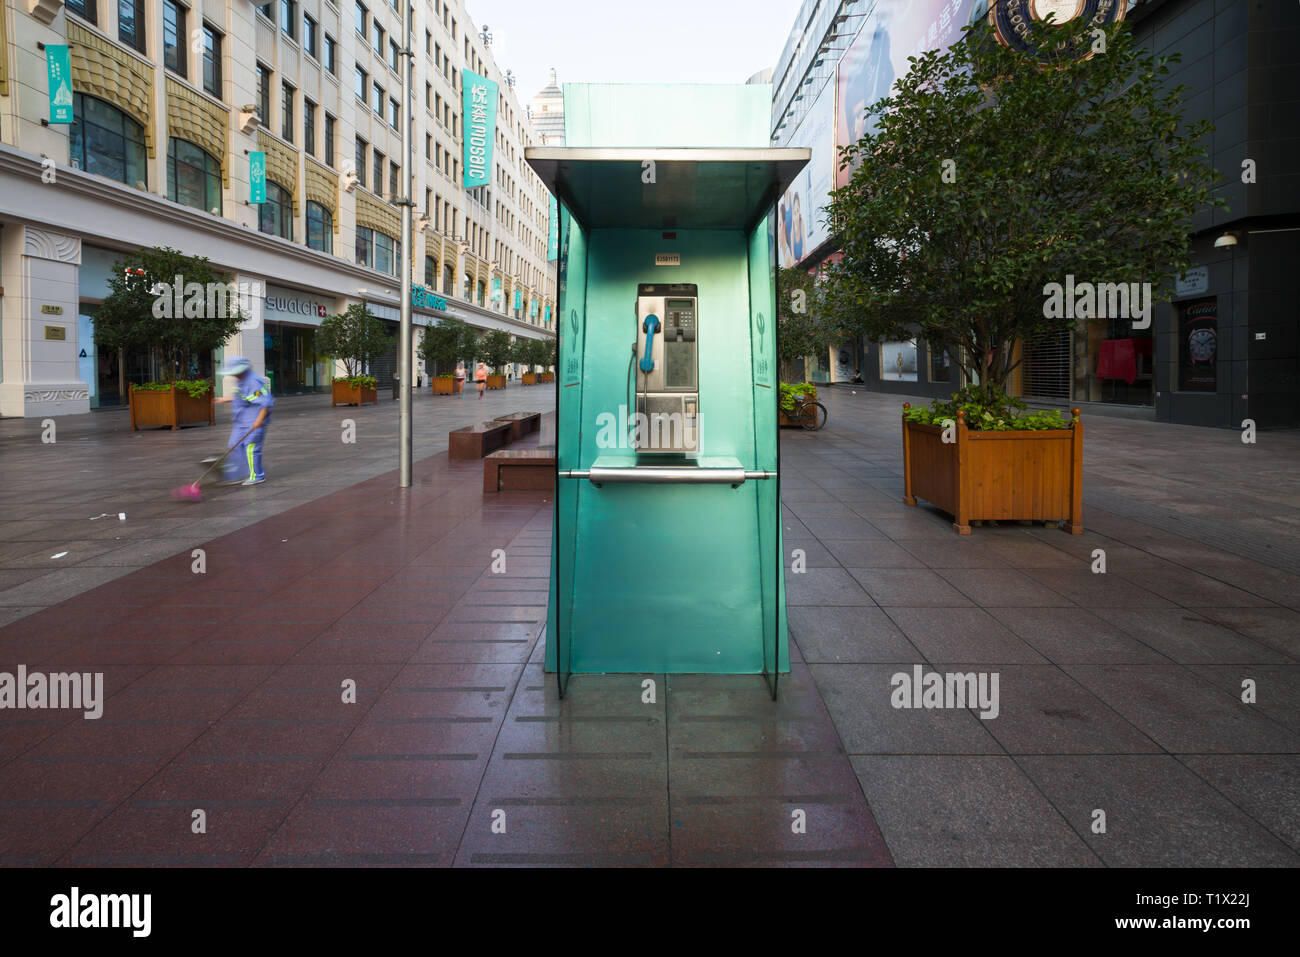 Shanghai, China - 08 12 2016: Green telephone booth also called phone booth, telephone kiosk, telephone call box, telephone box or public call box in - Stock Image